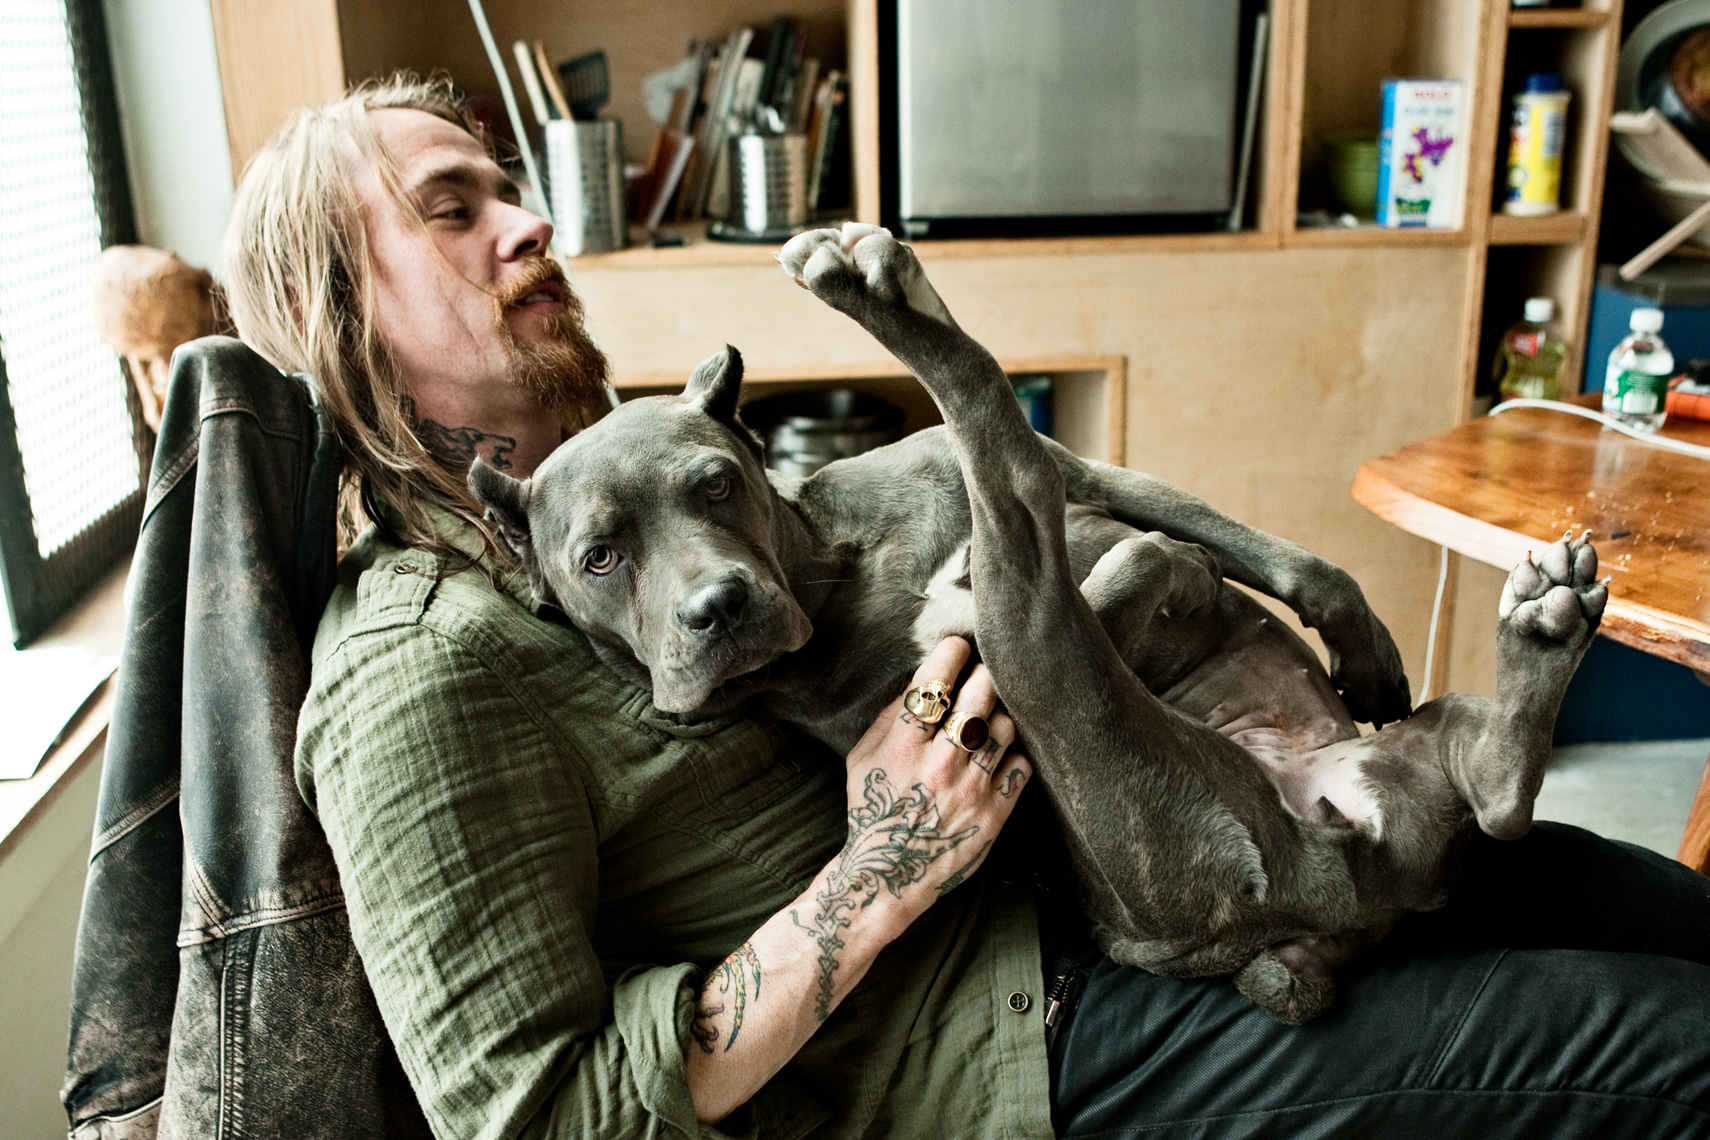 Los Angeles Dog Photography, Michael Brian, Clay Patrick McBride with dog Judy, tattooes